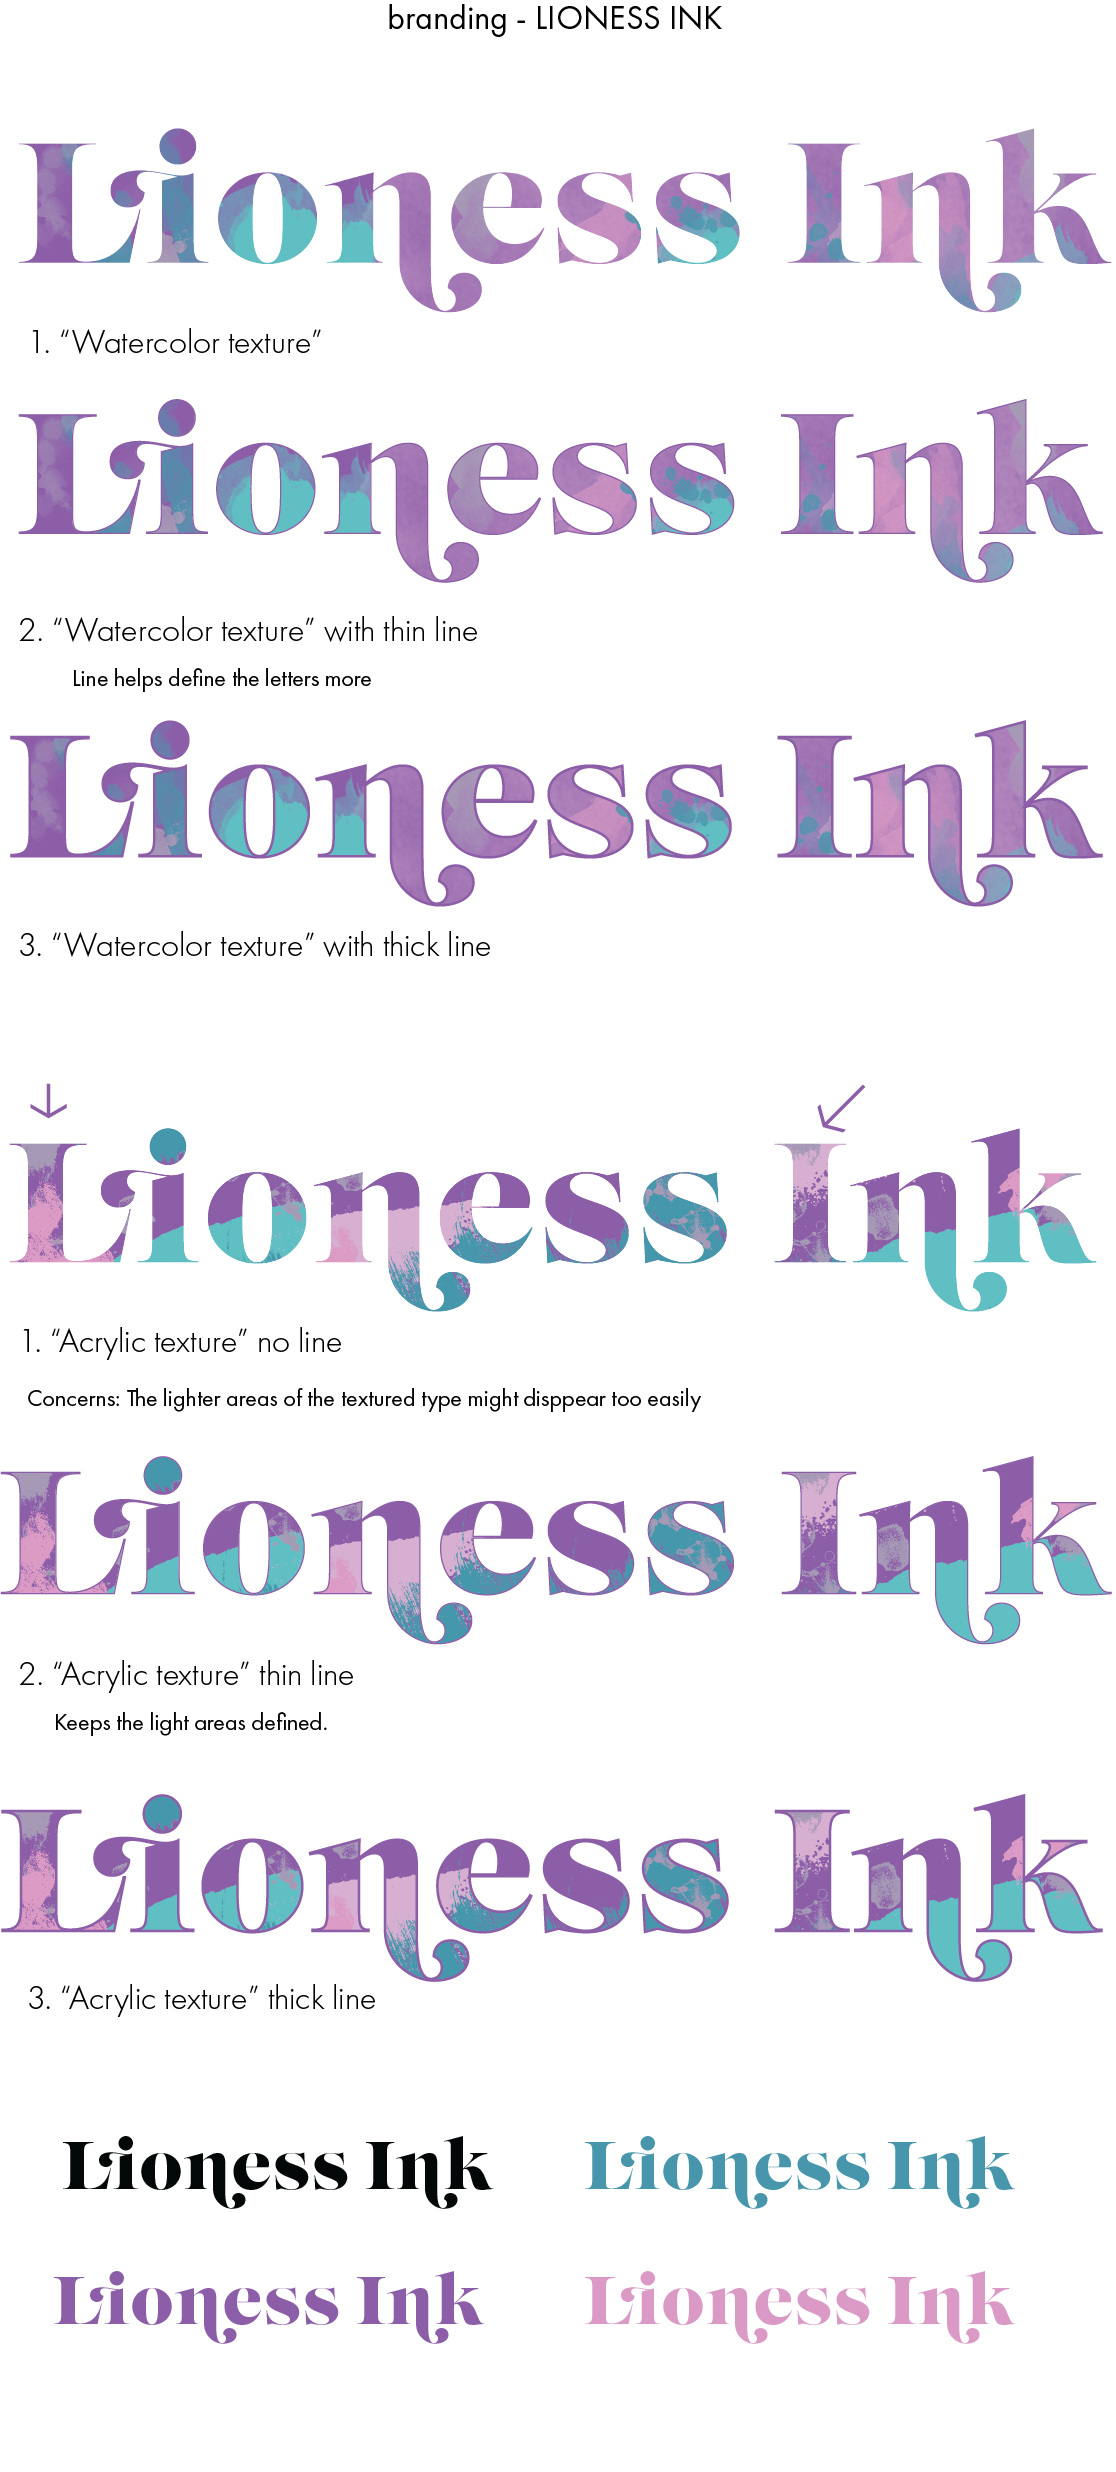 lionessink_logo_revisions.png